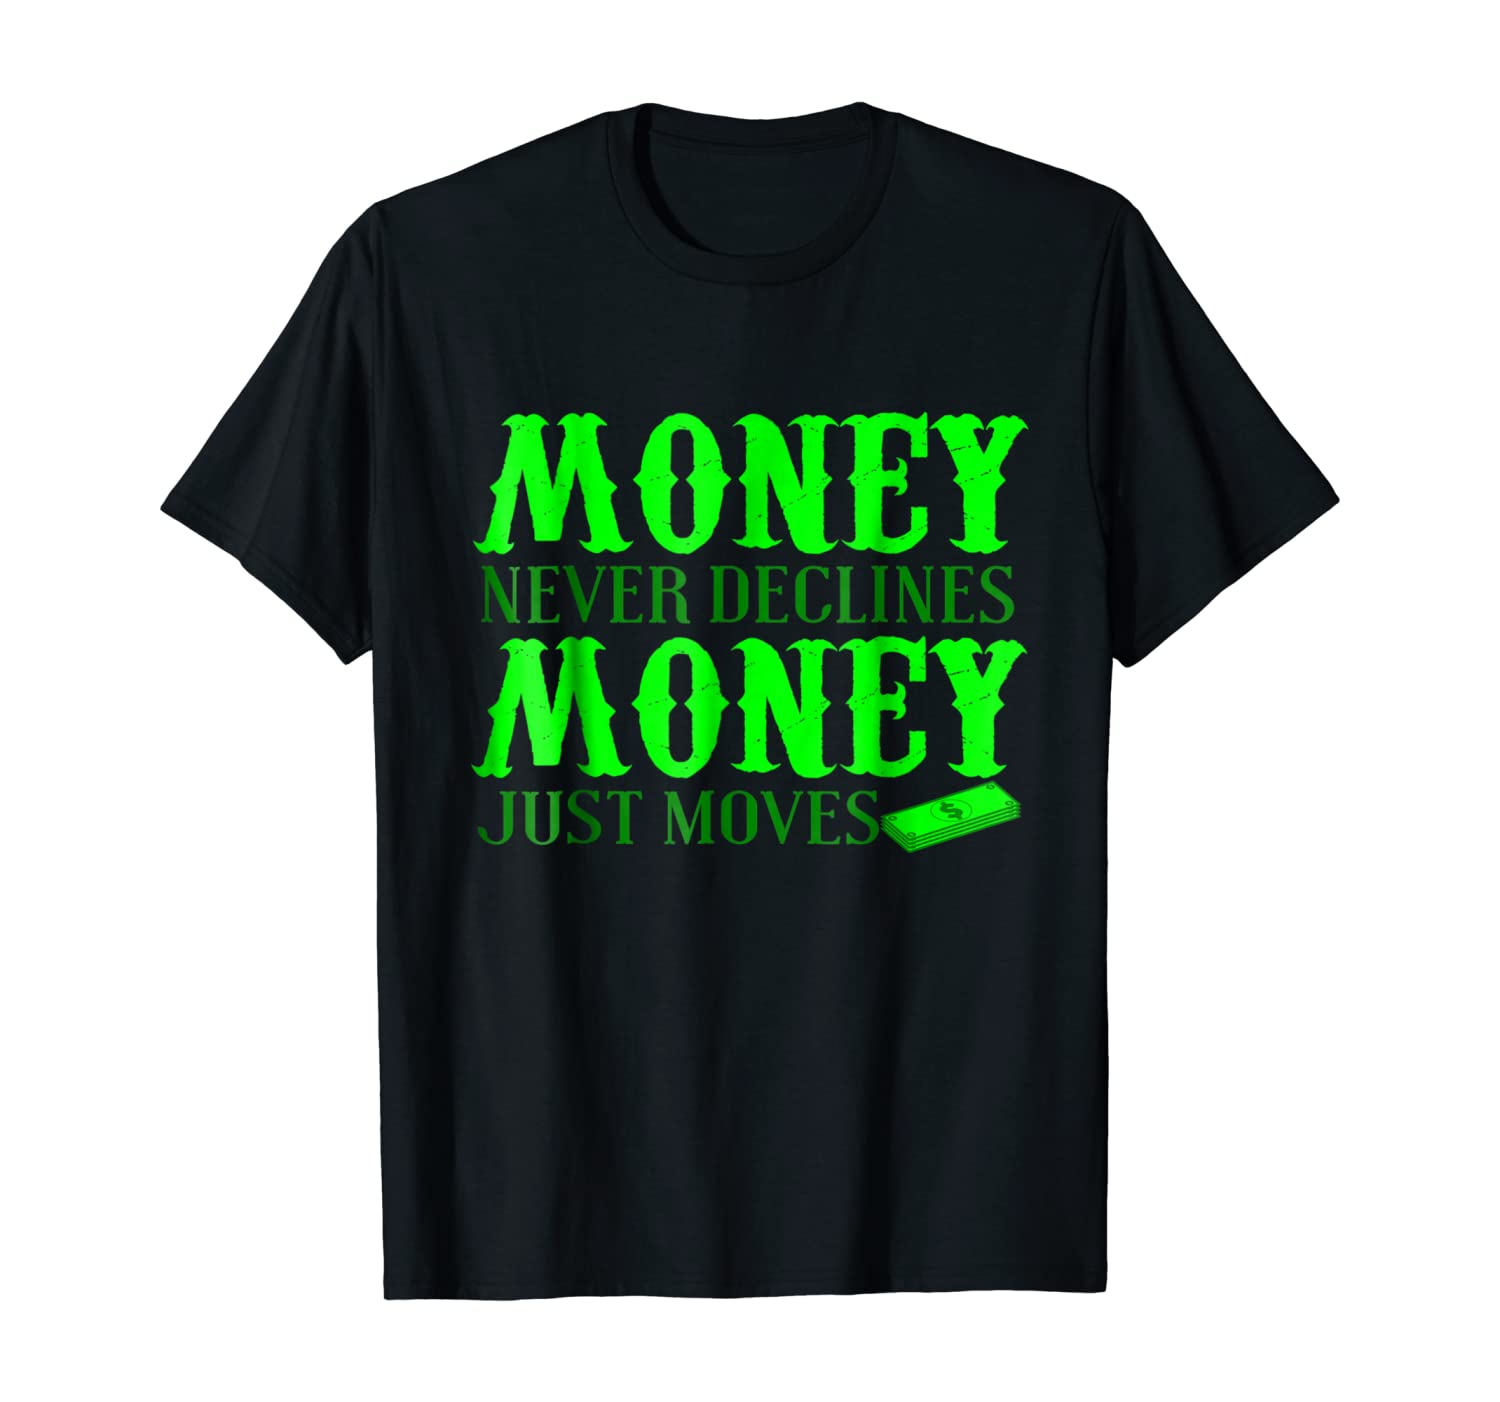 Stock Investor Funny Gift T Shirt - Money Never Declines